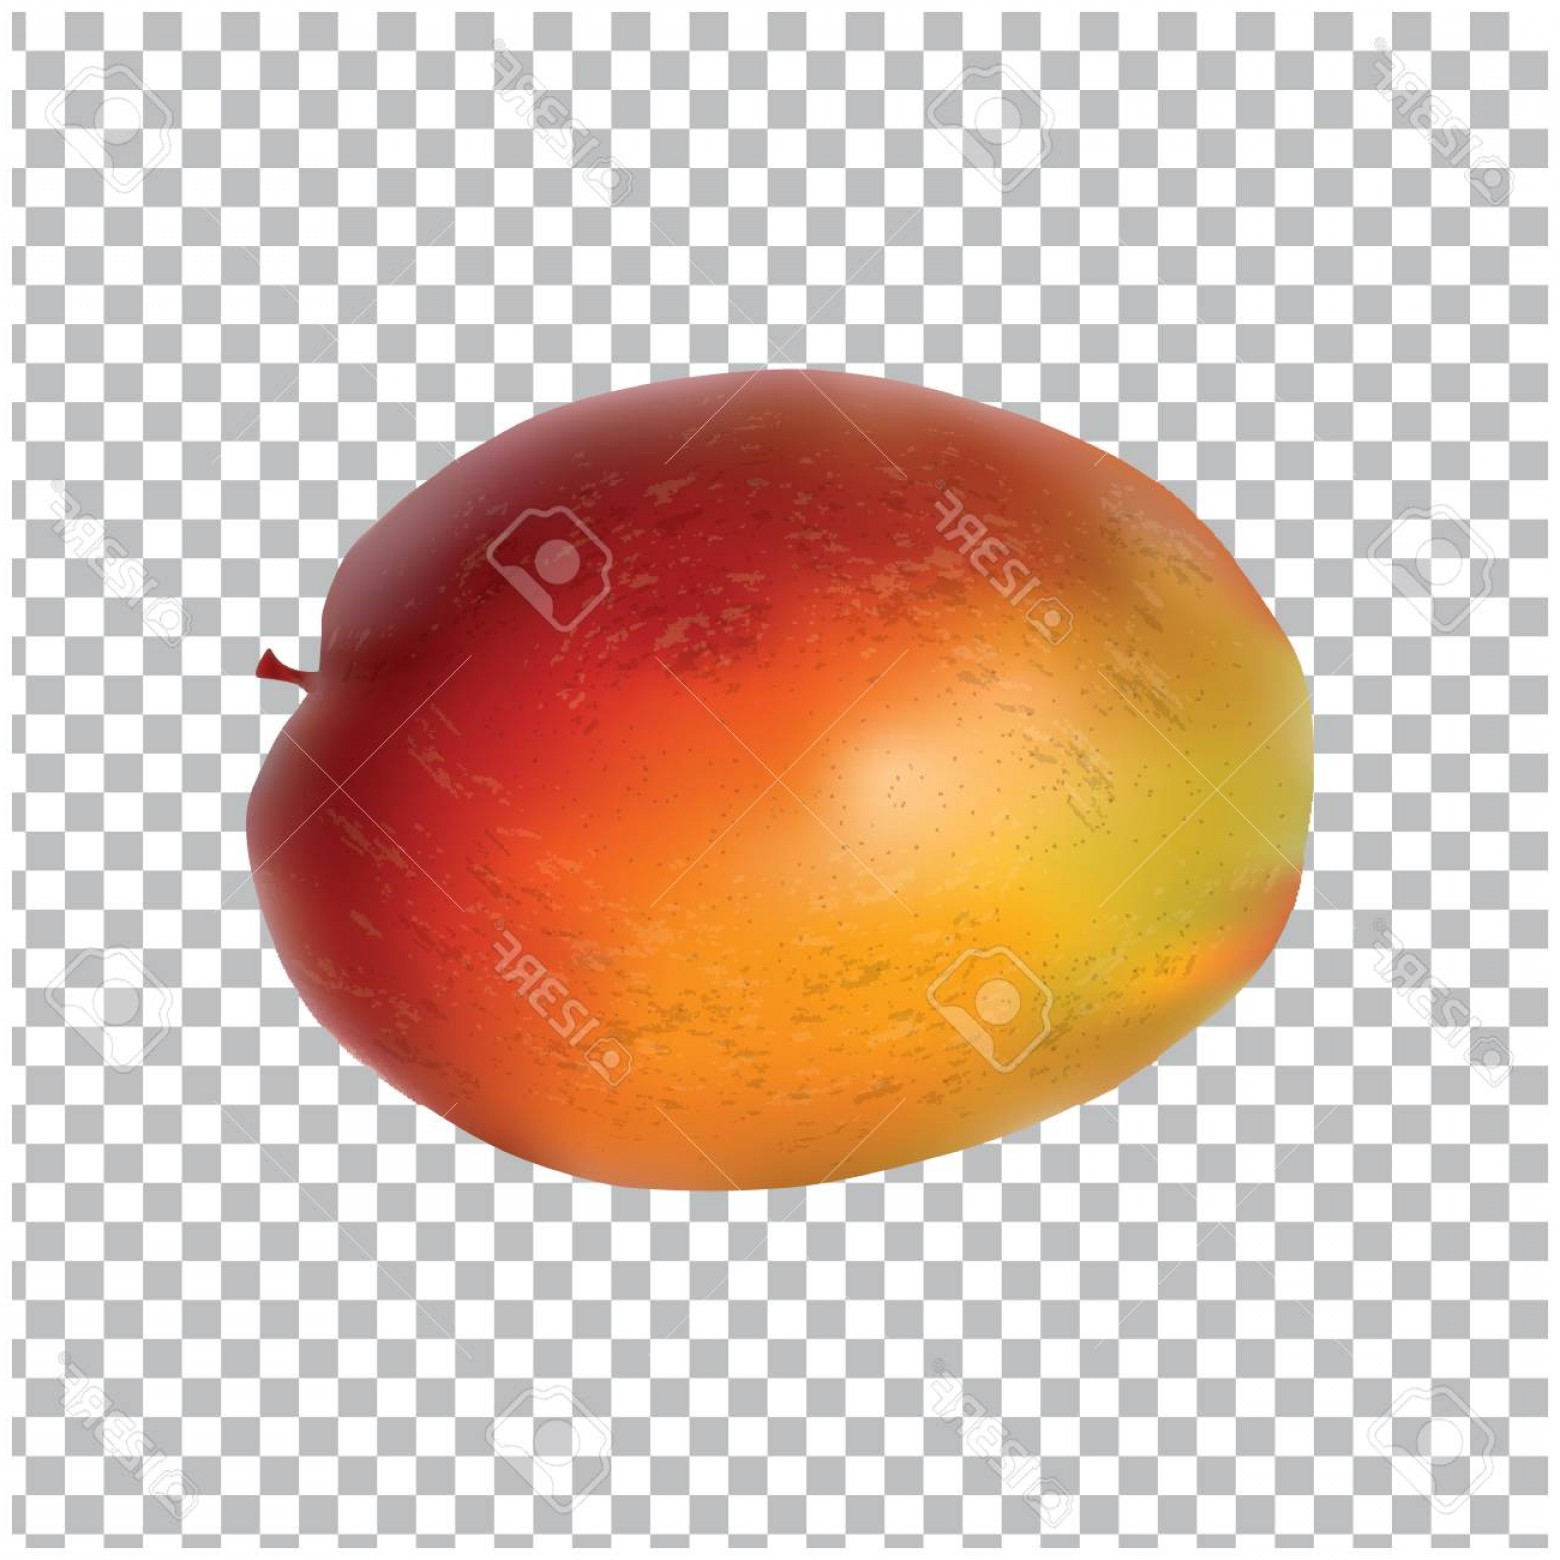 Easter Vector Art No Background: Photostock Vector Mango Isolated On A Transparent Background Realistic Art Creative Modern Vector